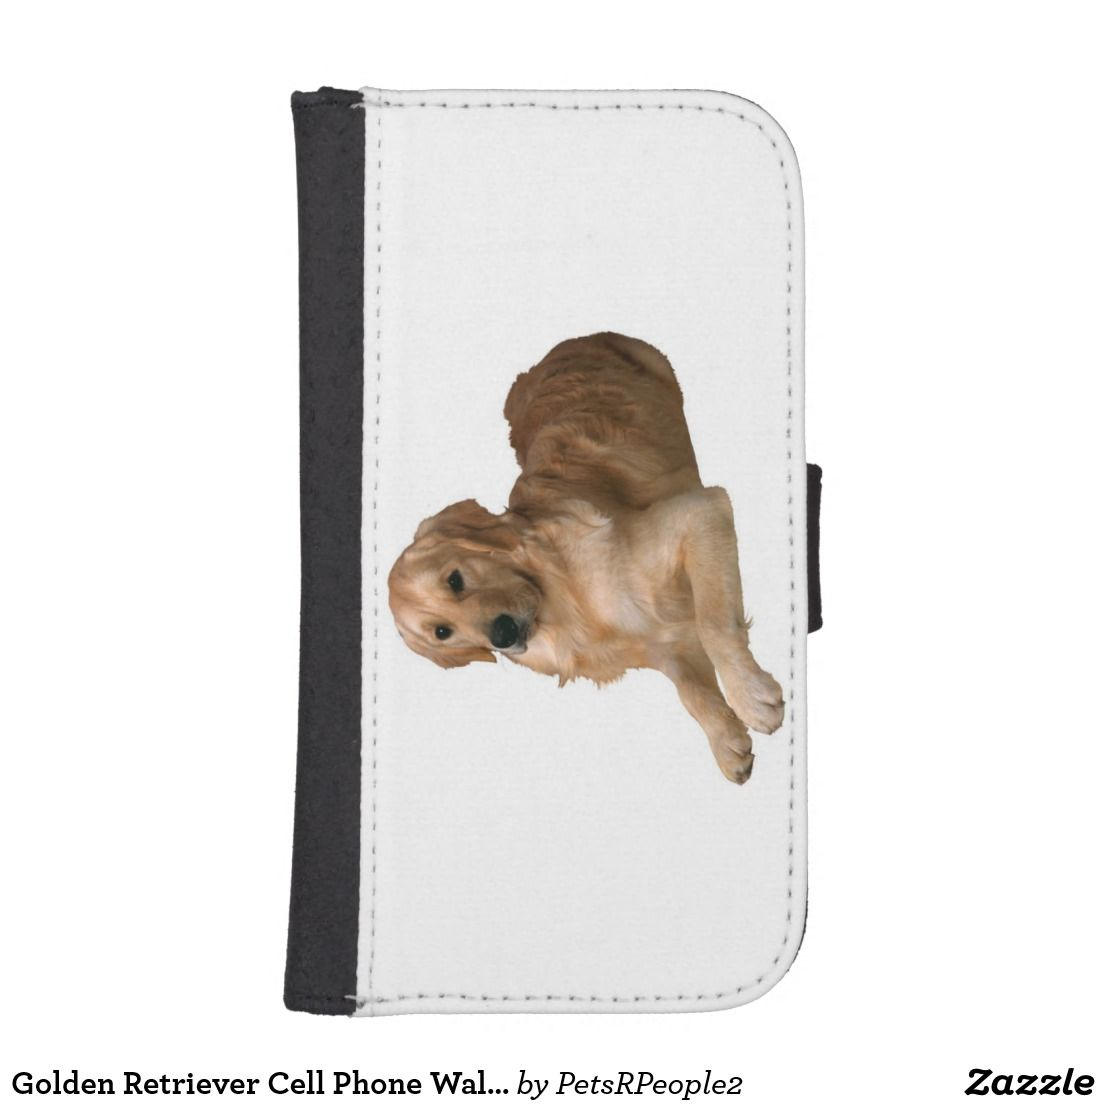 Golden Retriever Cell Phone Wallet iPhone Samsung Zazzle